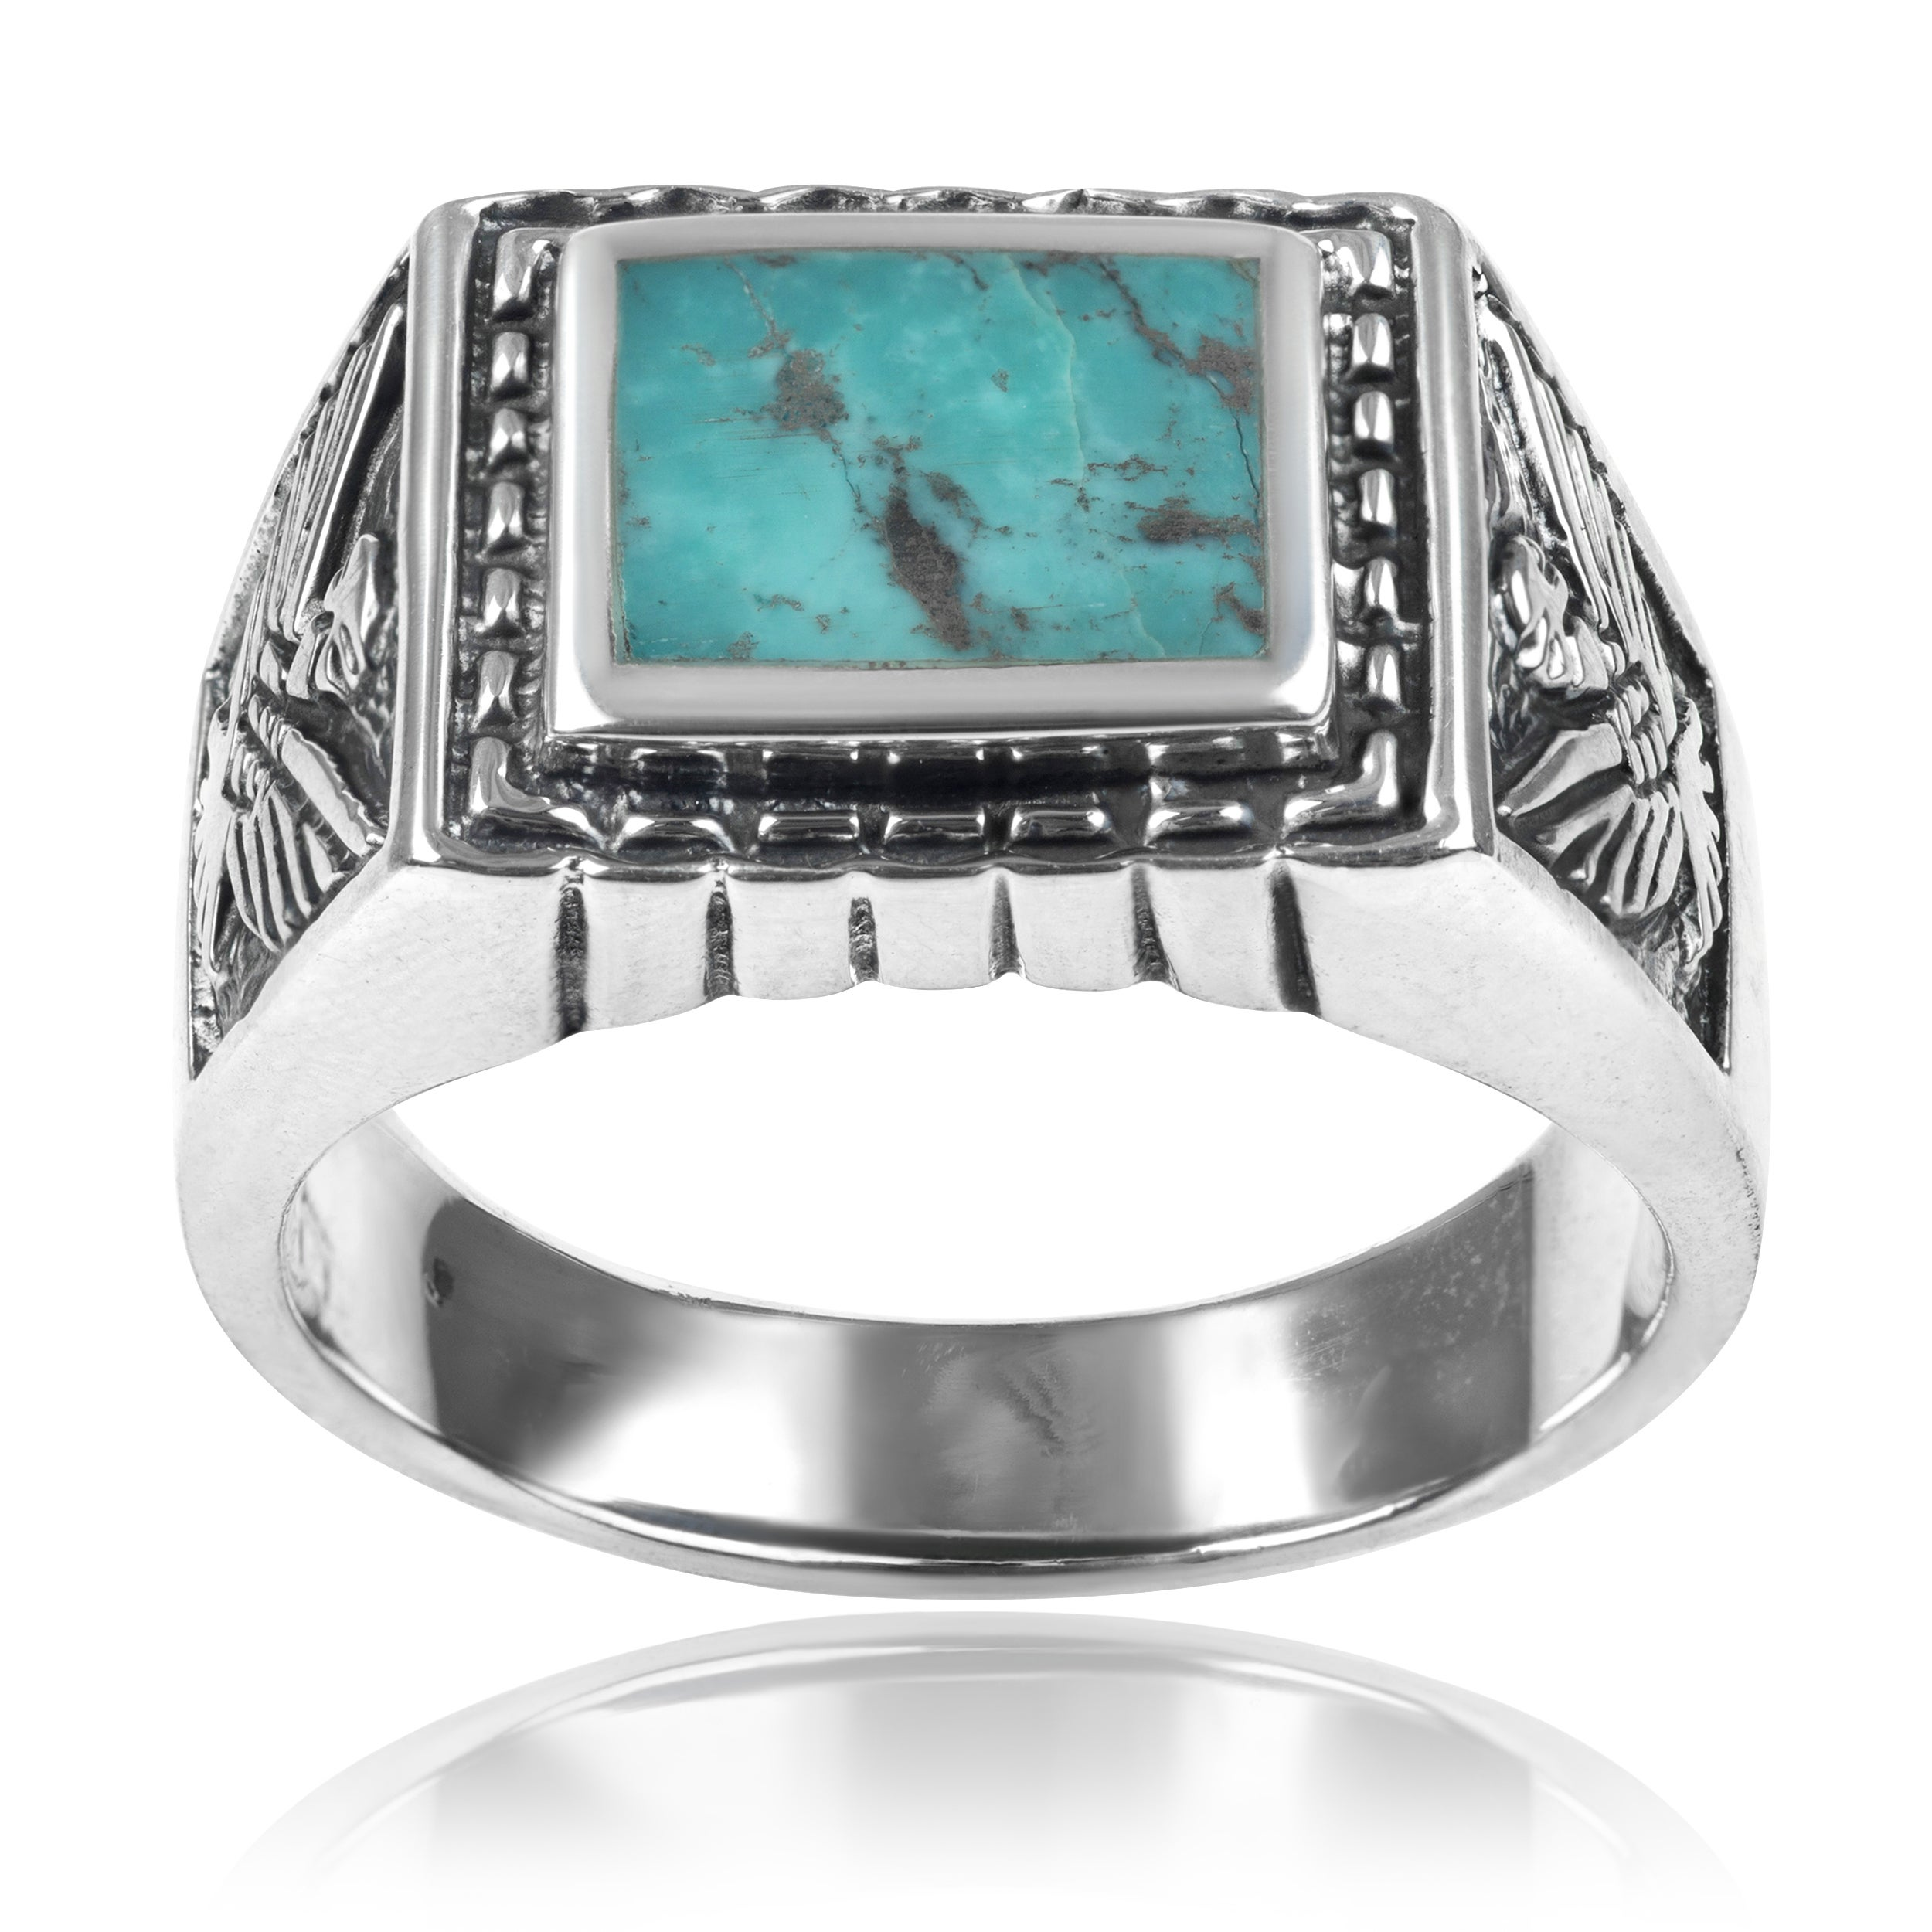 Vance Co. Men's Sterling Silver Turquoise Ring (Turquoise...